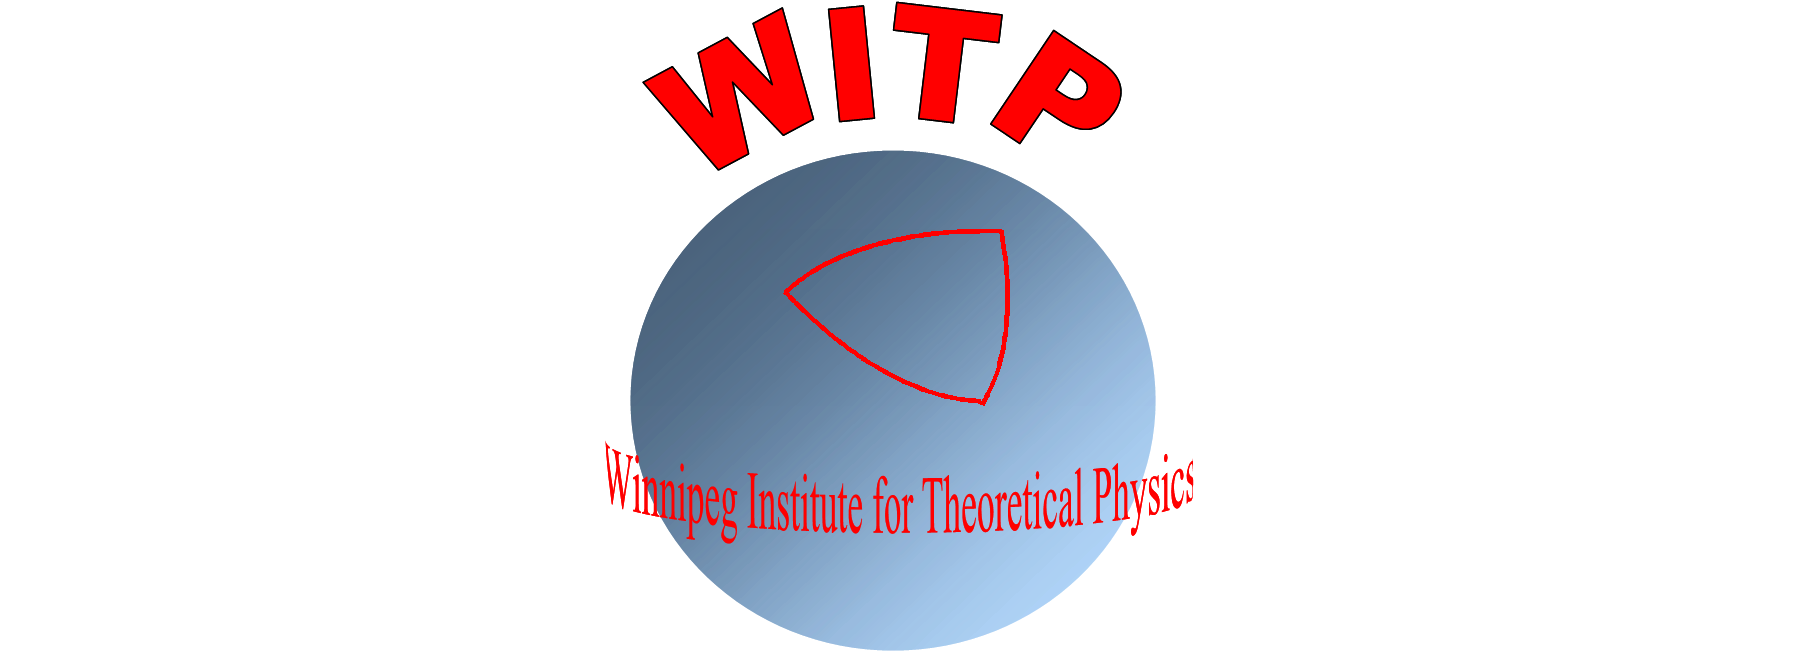 Winnipeg Institute for Theoretical Physics